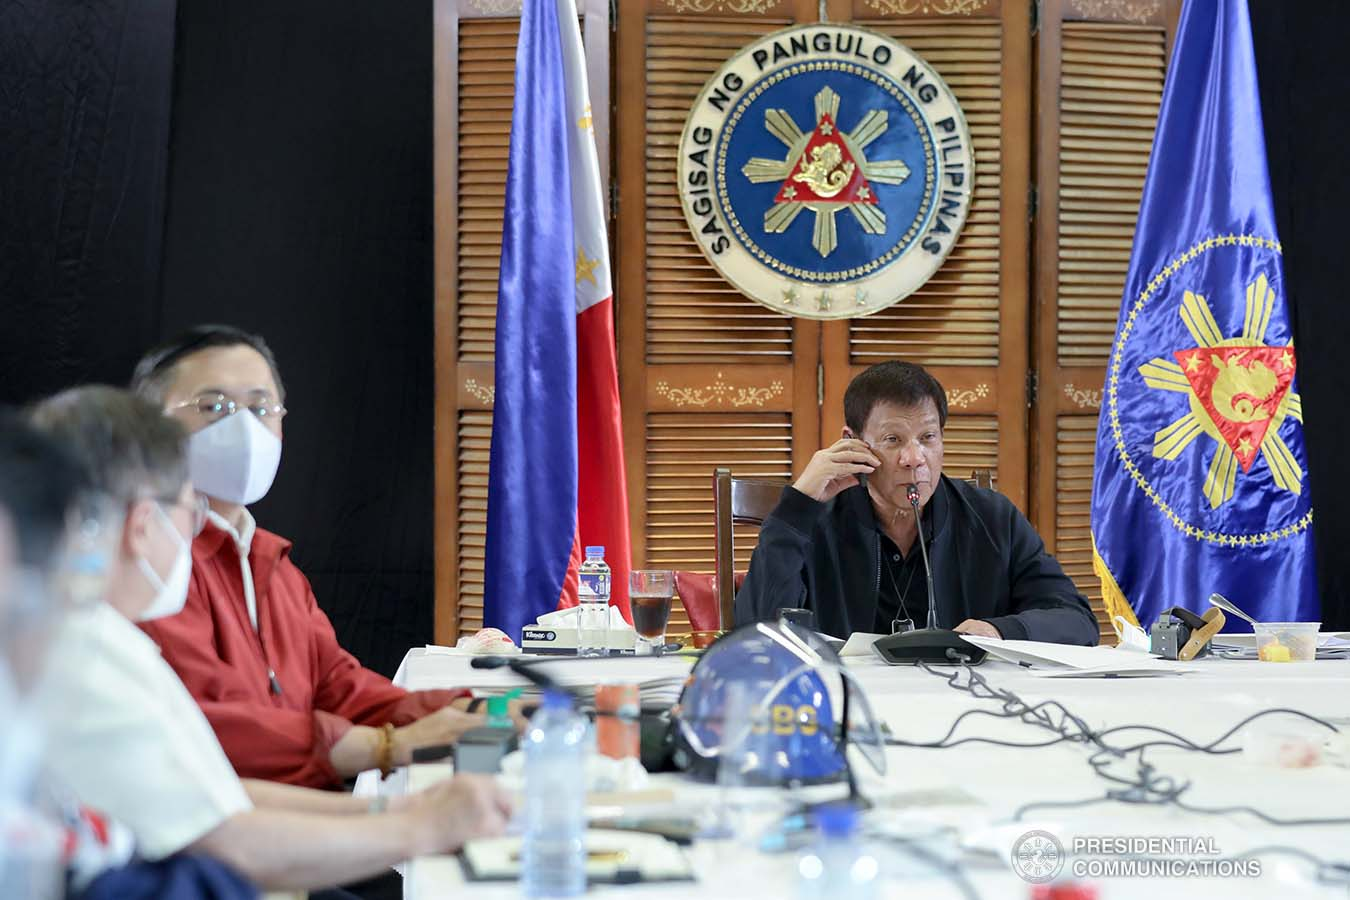 President Rodrigo Roa Duterte talks to the people after holding a meeting with the Inter-Agency Task Force on the Emerging Infectious Diseases (IATF-EID) core members at the Matina Enclaves in Davao City on August 24, 2020. ROBINSON NIÑAL JR./PRESIDENTIAL PHOTO